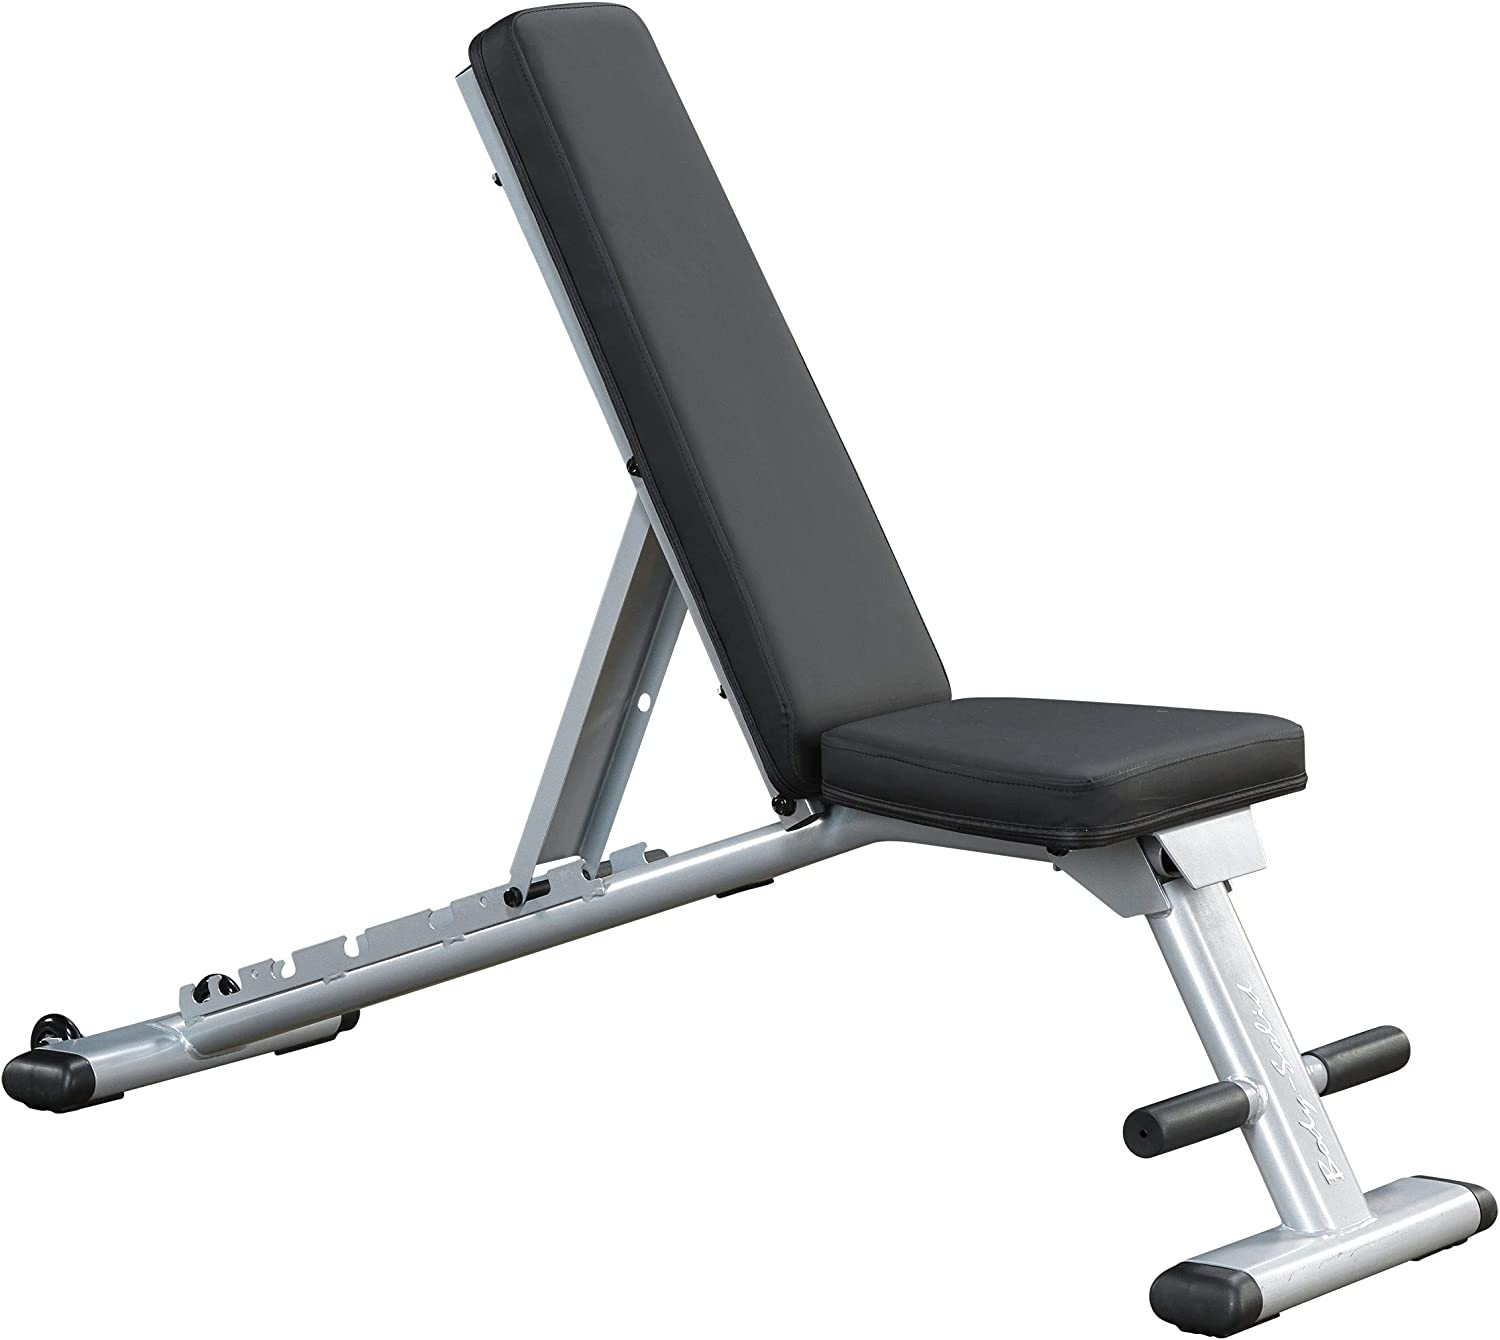 Body Solid Gfid225 Compact Folding Adjustable Weight Bench